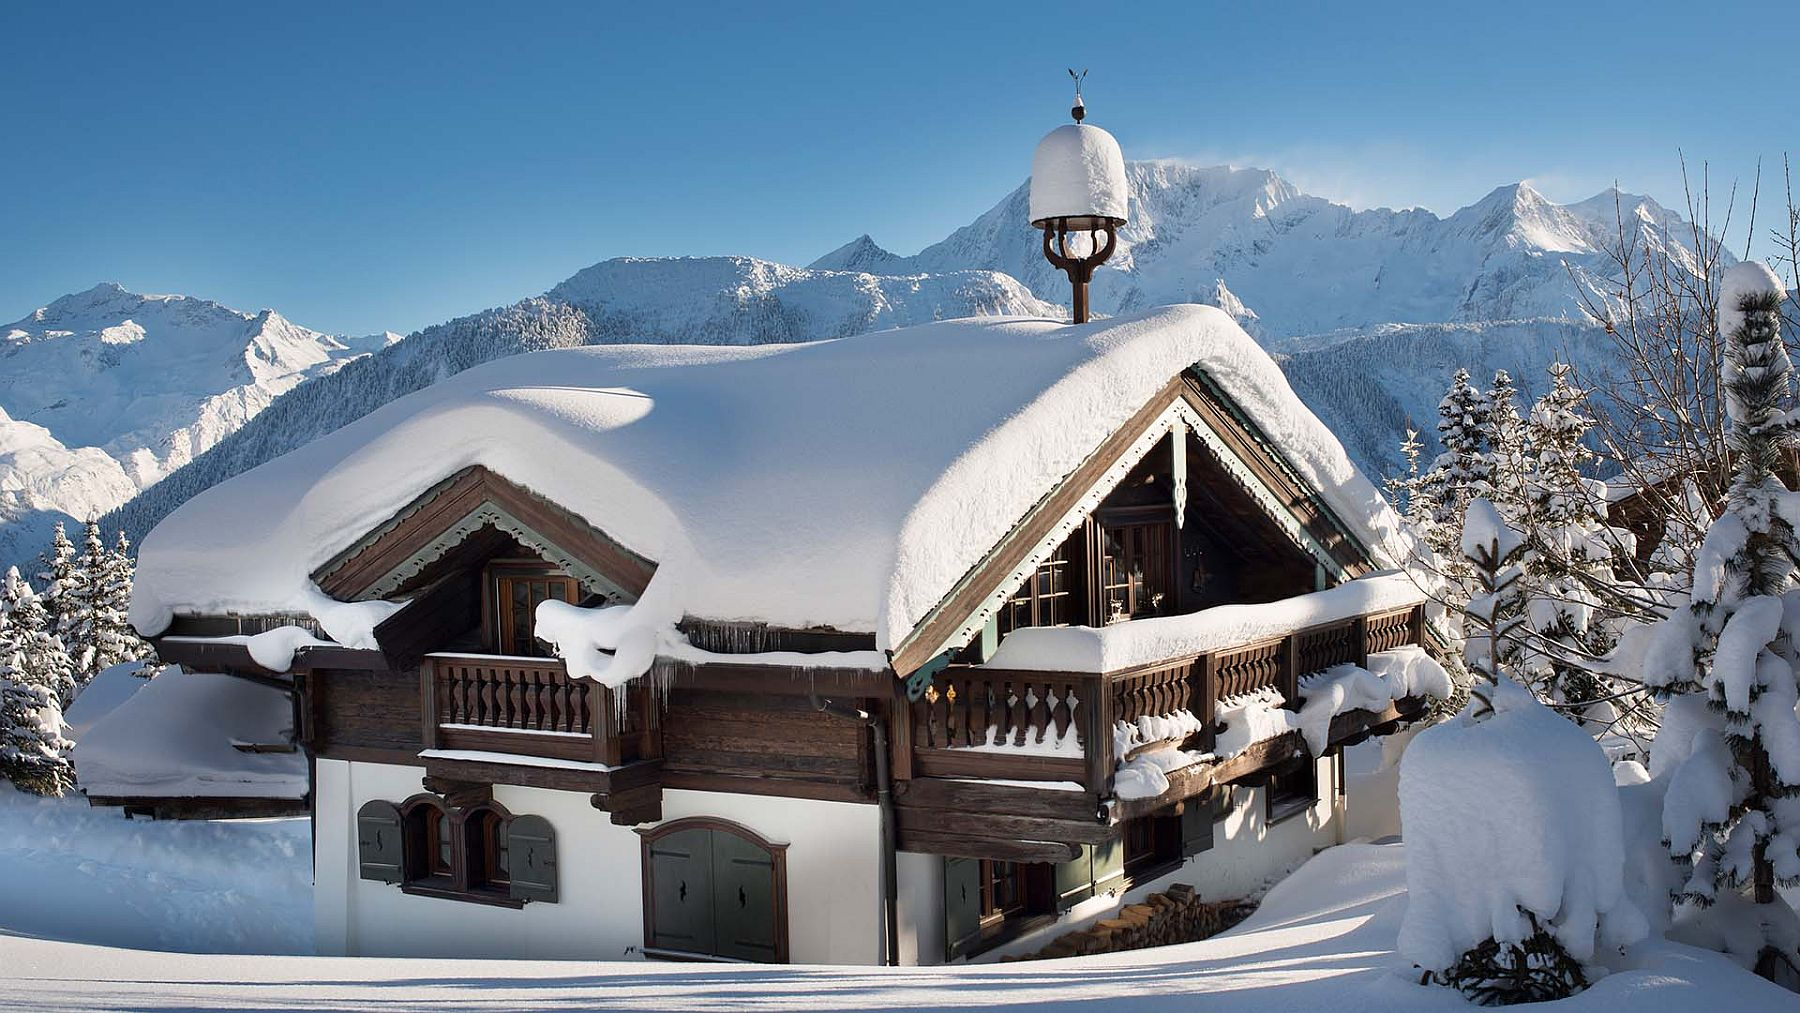 Enjoy Courchevel At Its Stunning Best With Luxurious